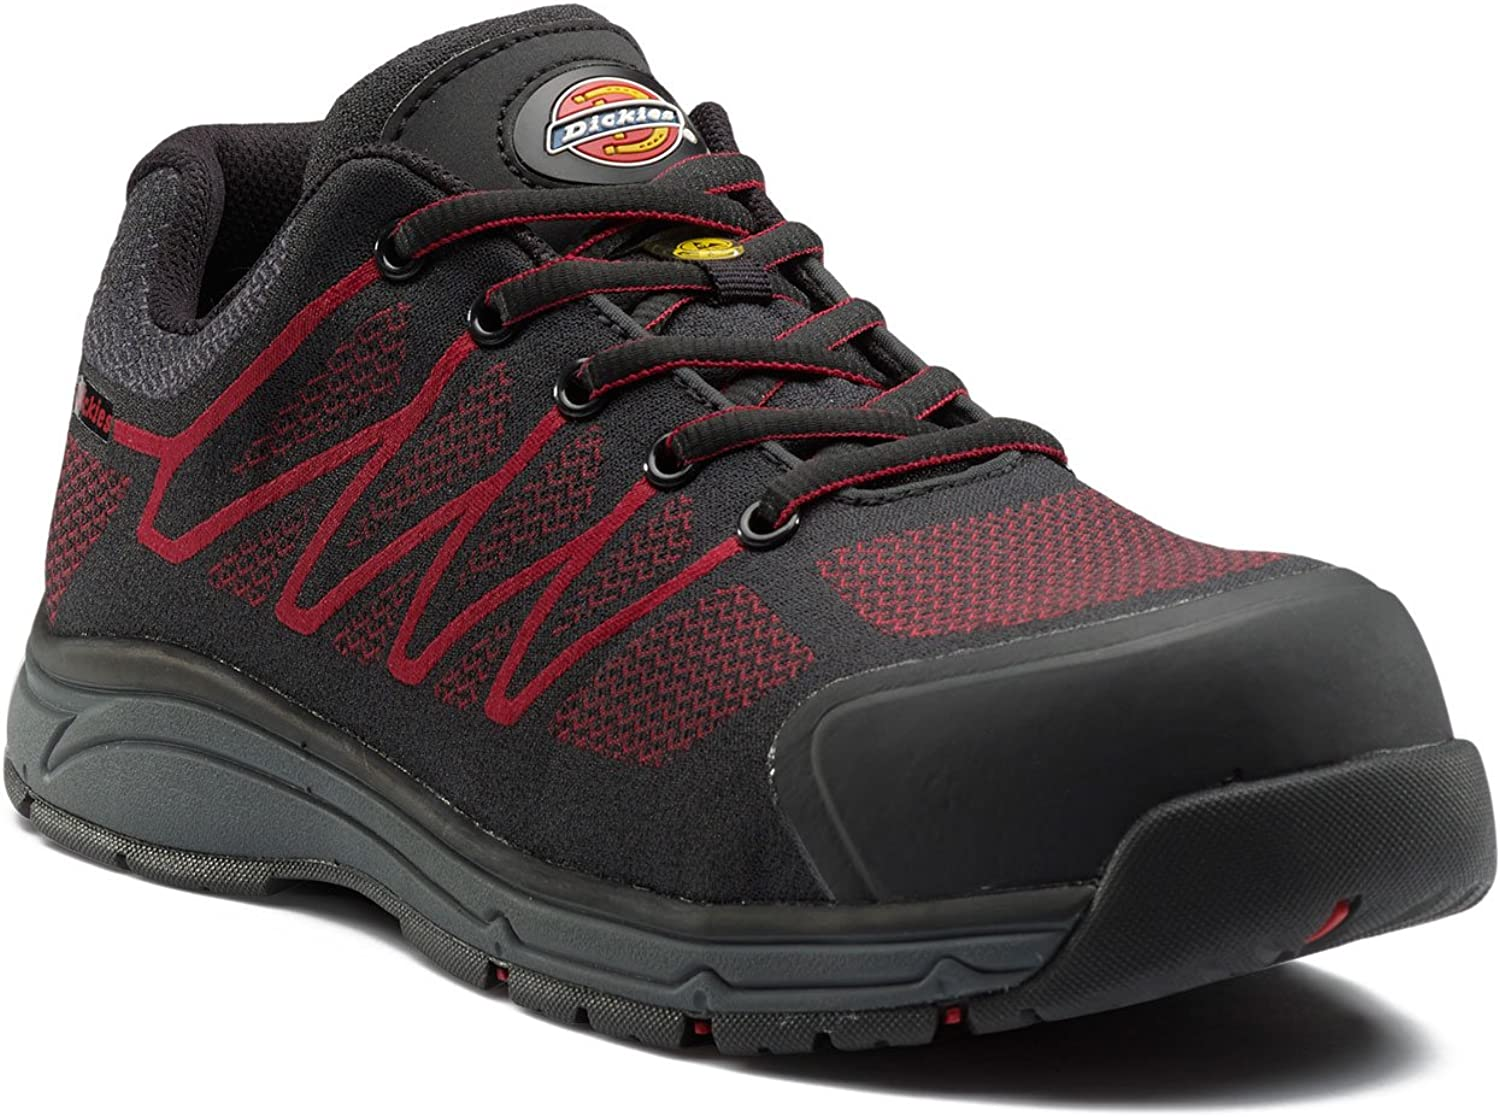 Dickies Mens Liberty Composite Toe Cap Slip Resistant Safety shoes